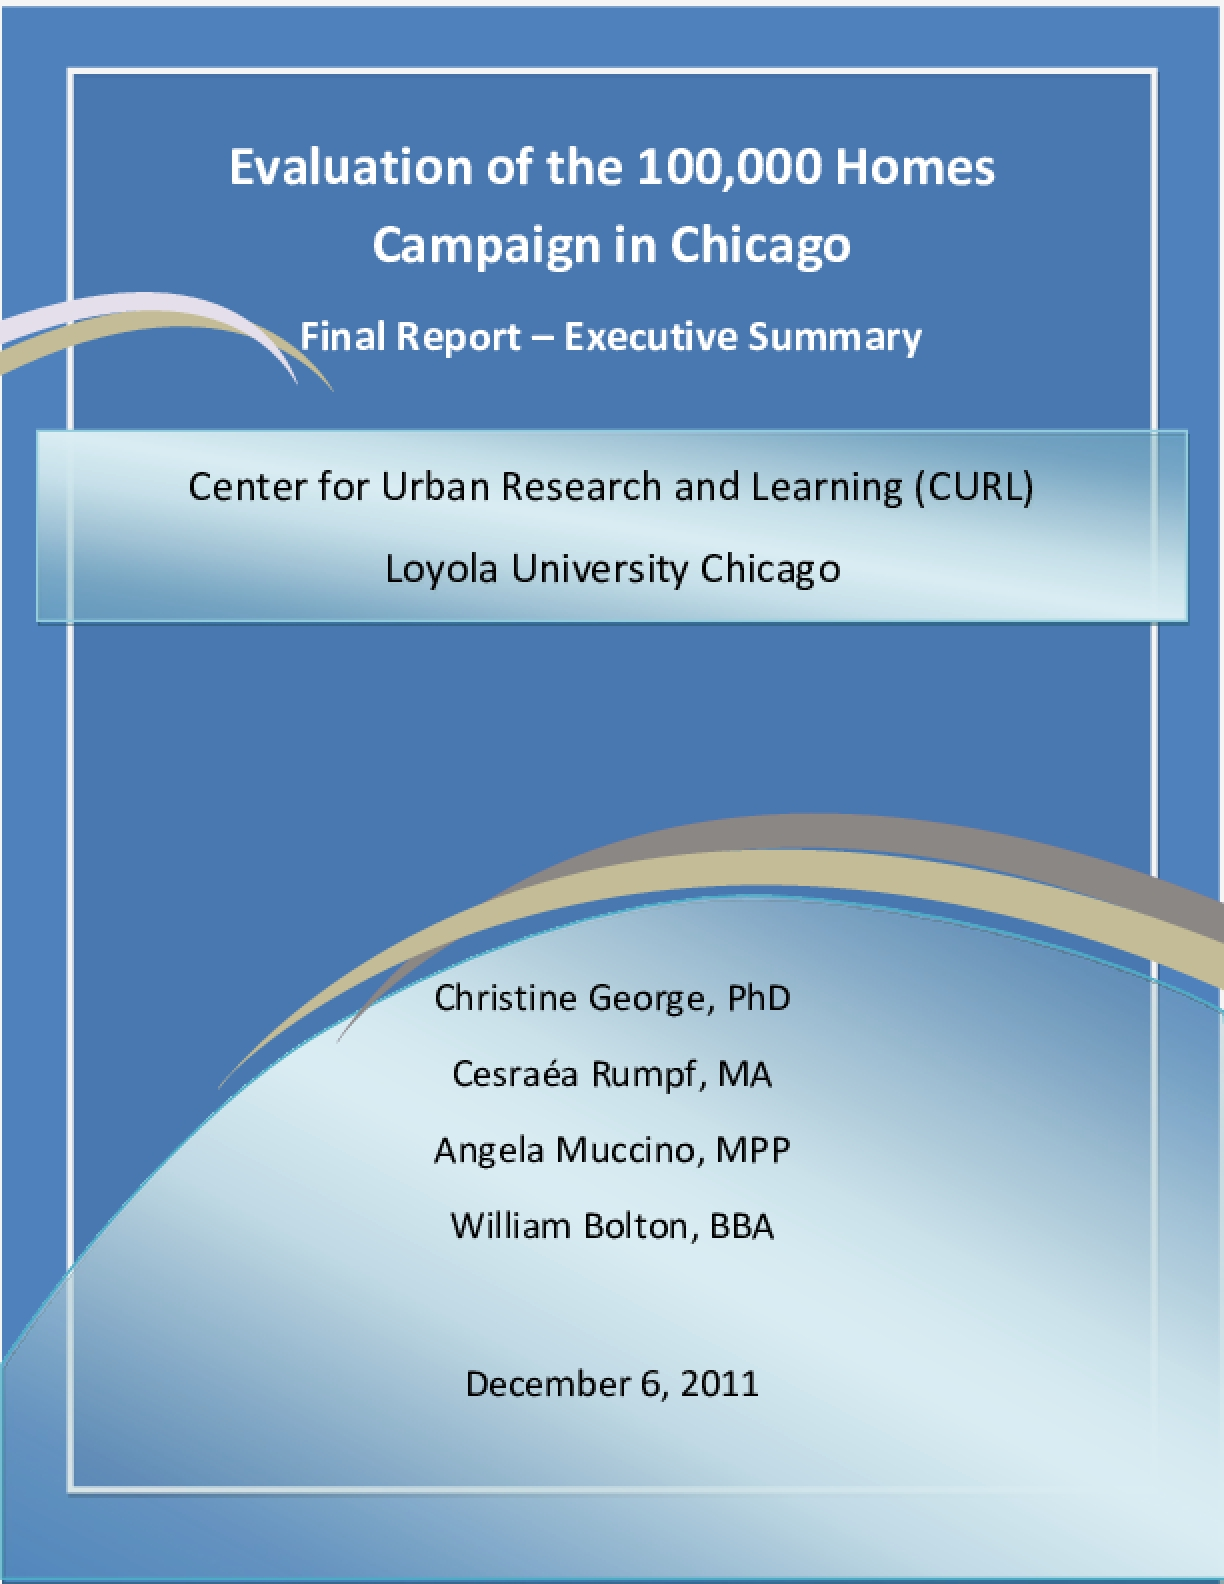 Evaluation of the 100,000 Homes Campaign in Chicago Final Report: Executive Summary